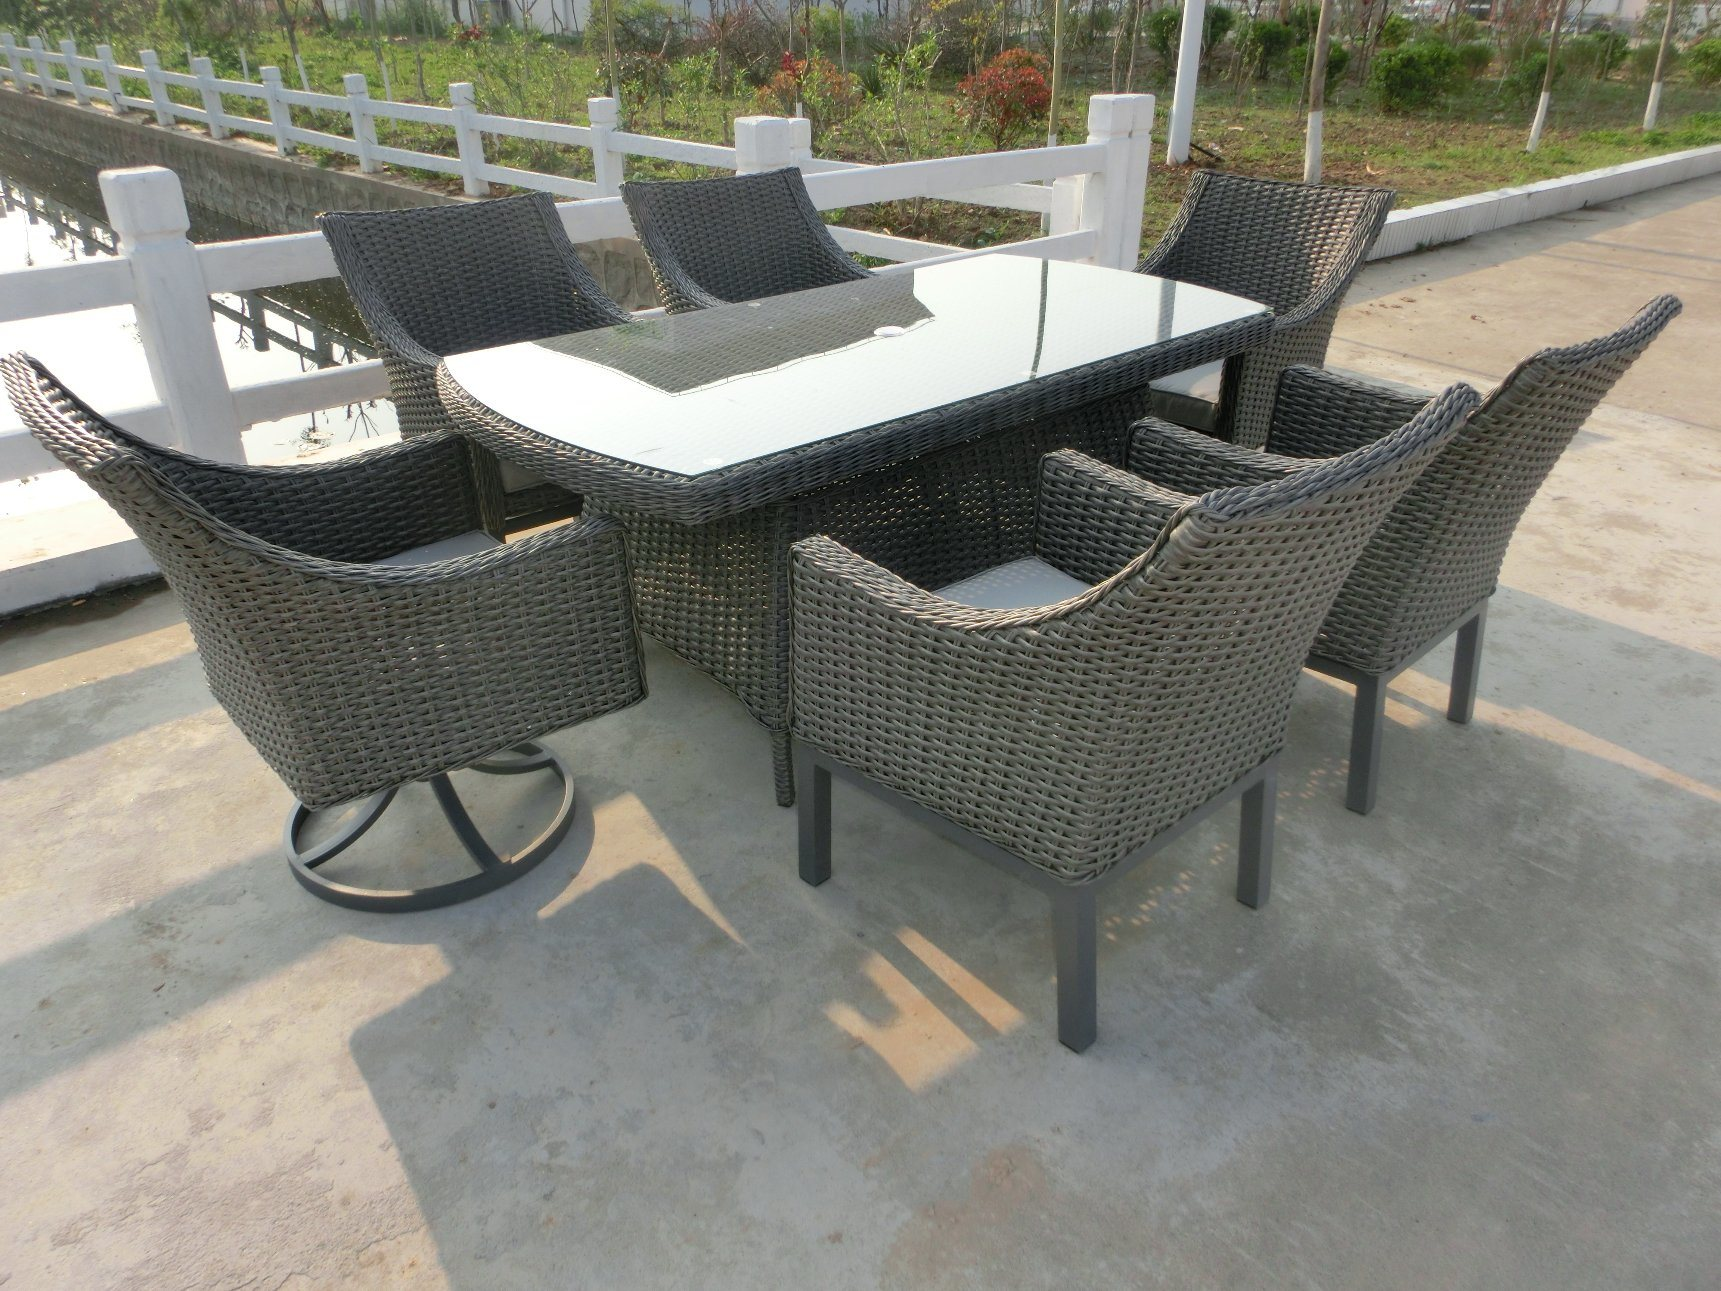 10mm Half Moon Curve Flat Wicker Furniture